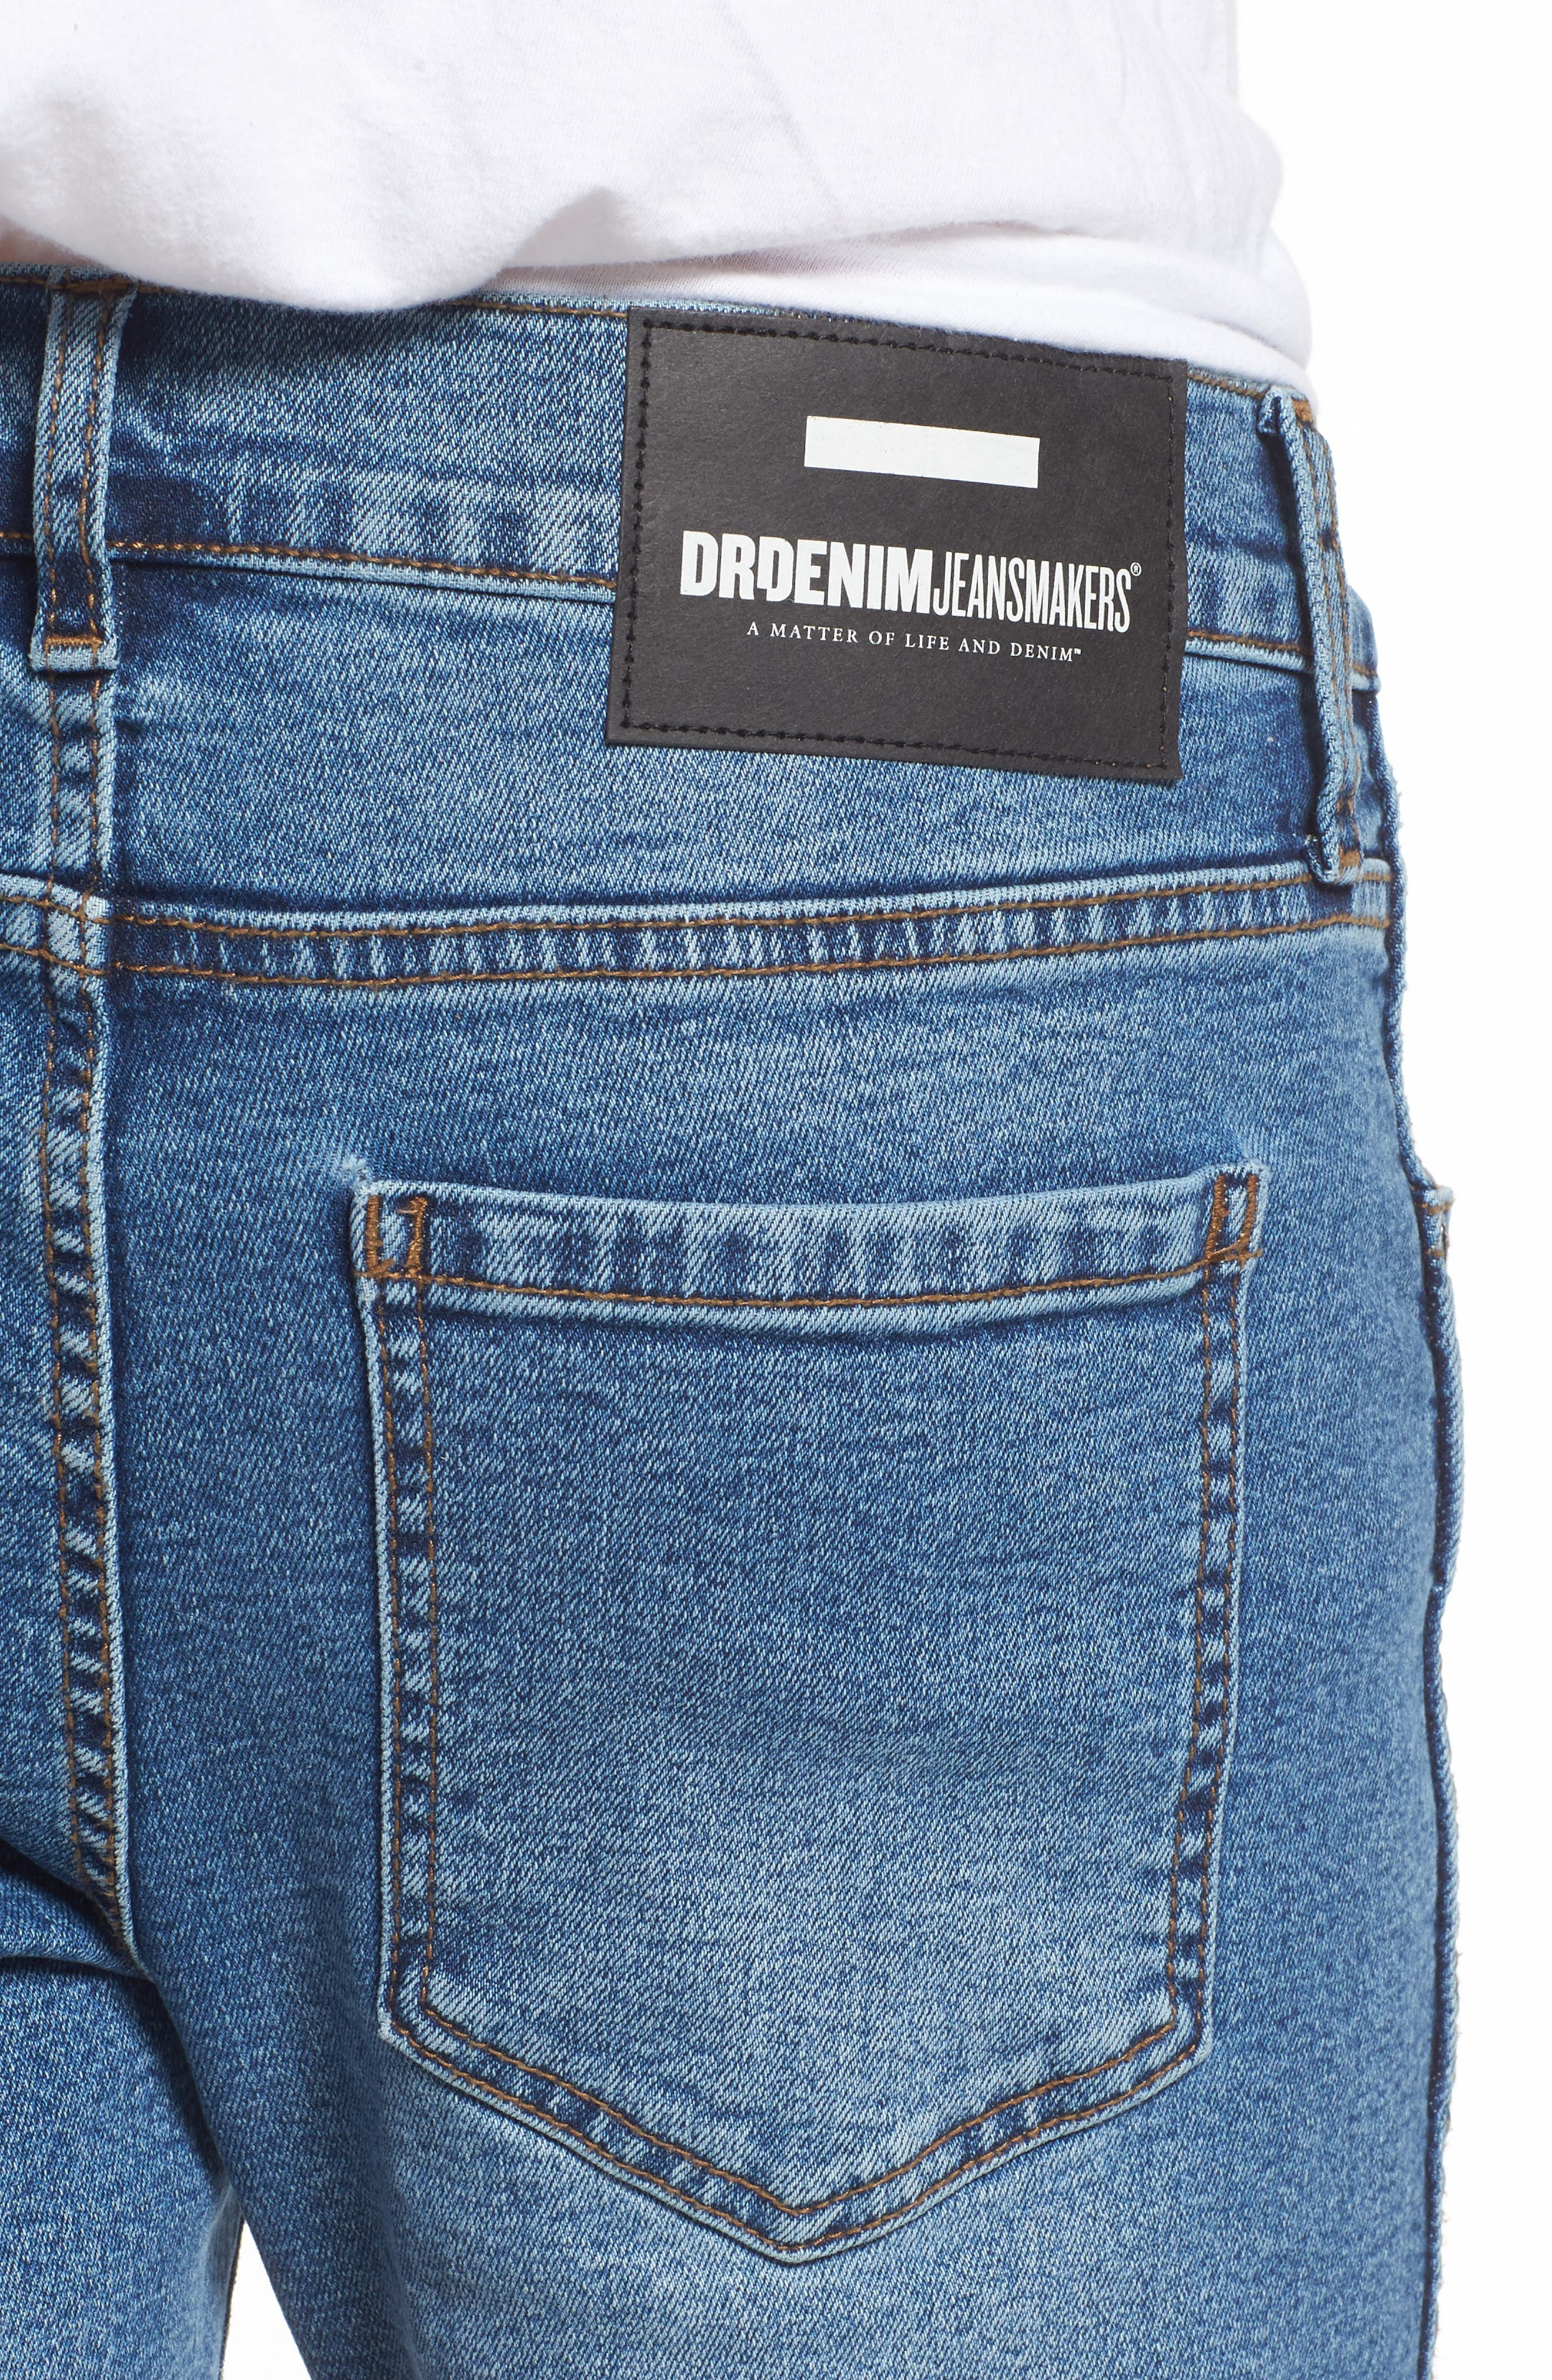 Snap Skinny Fit Jeans,                             Alternate thumbnail 4, color,                             Light Stone Destroyed